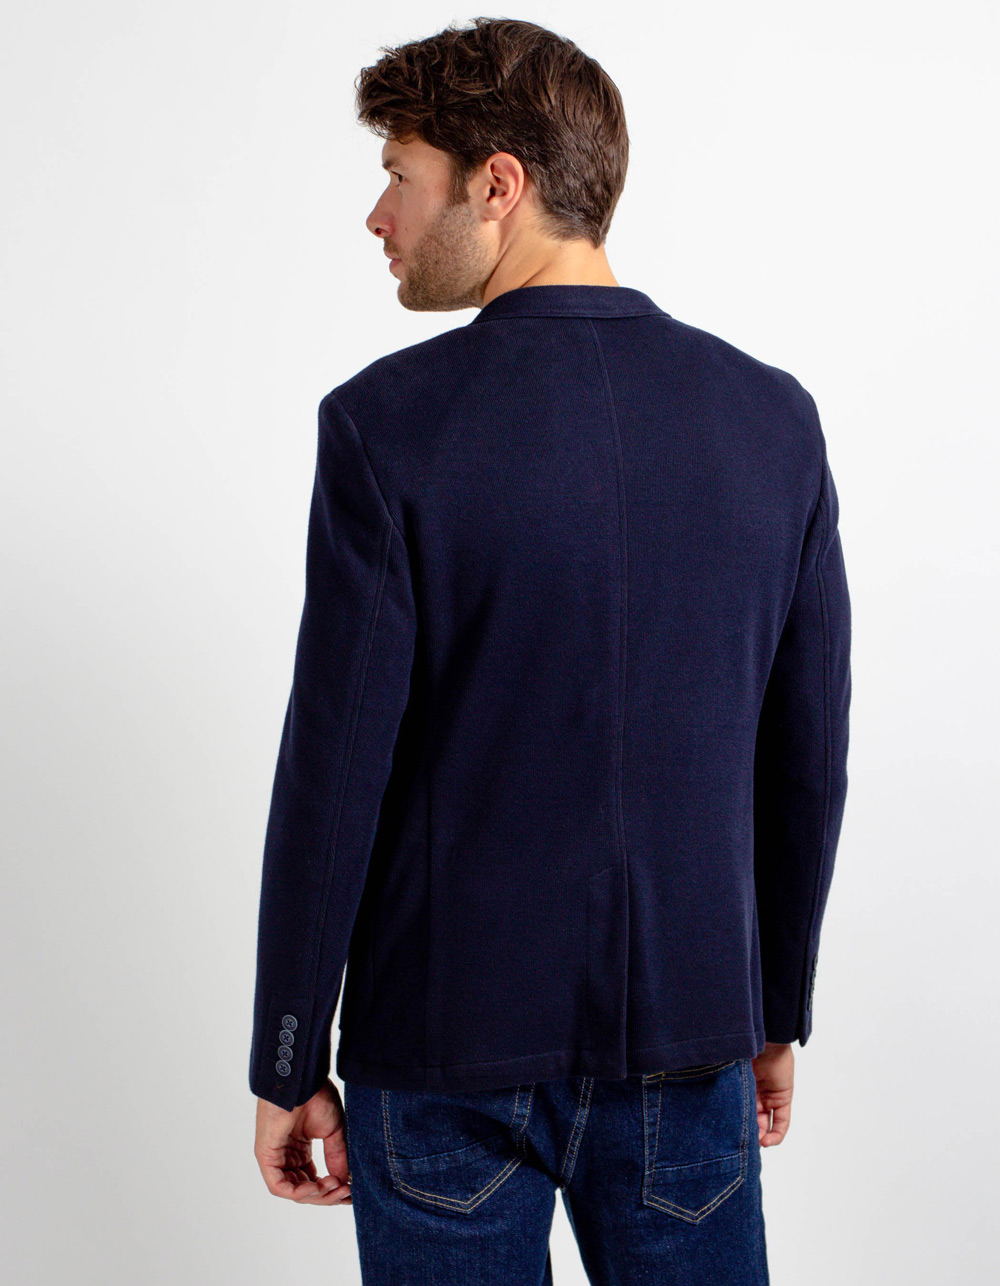 Navy blue knit blazer - Backside